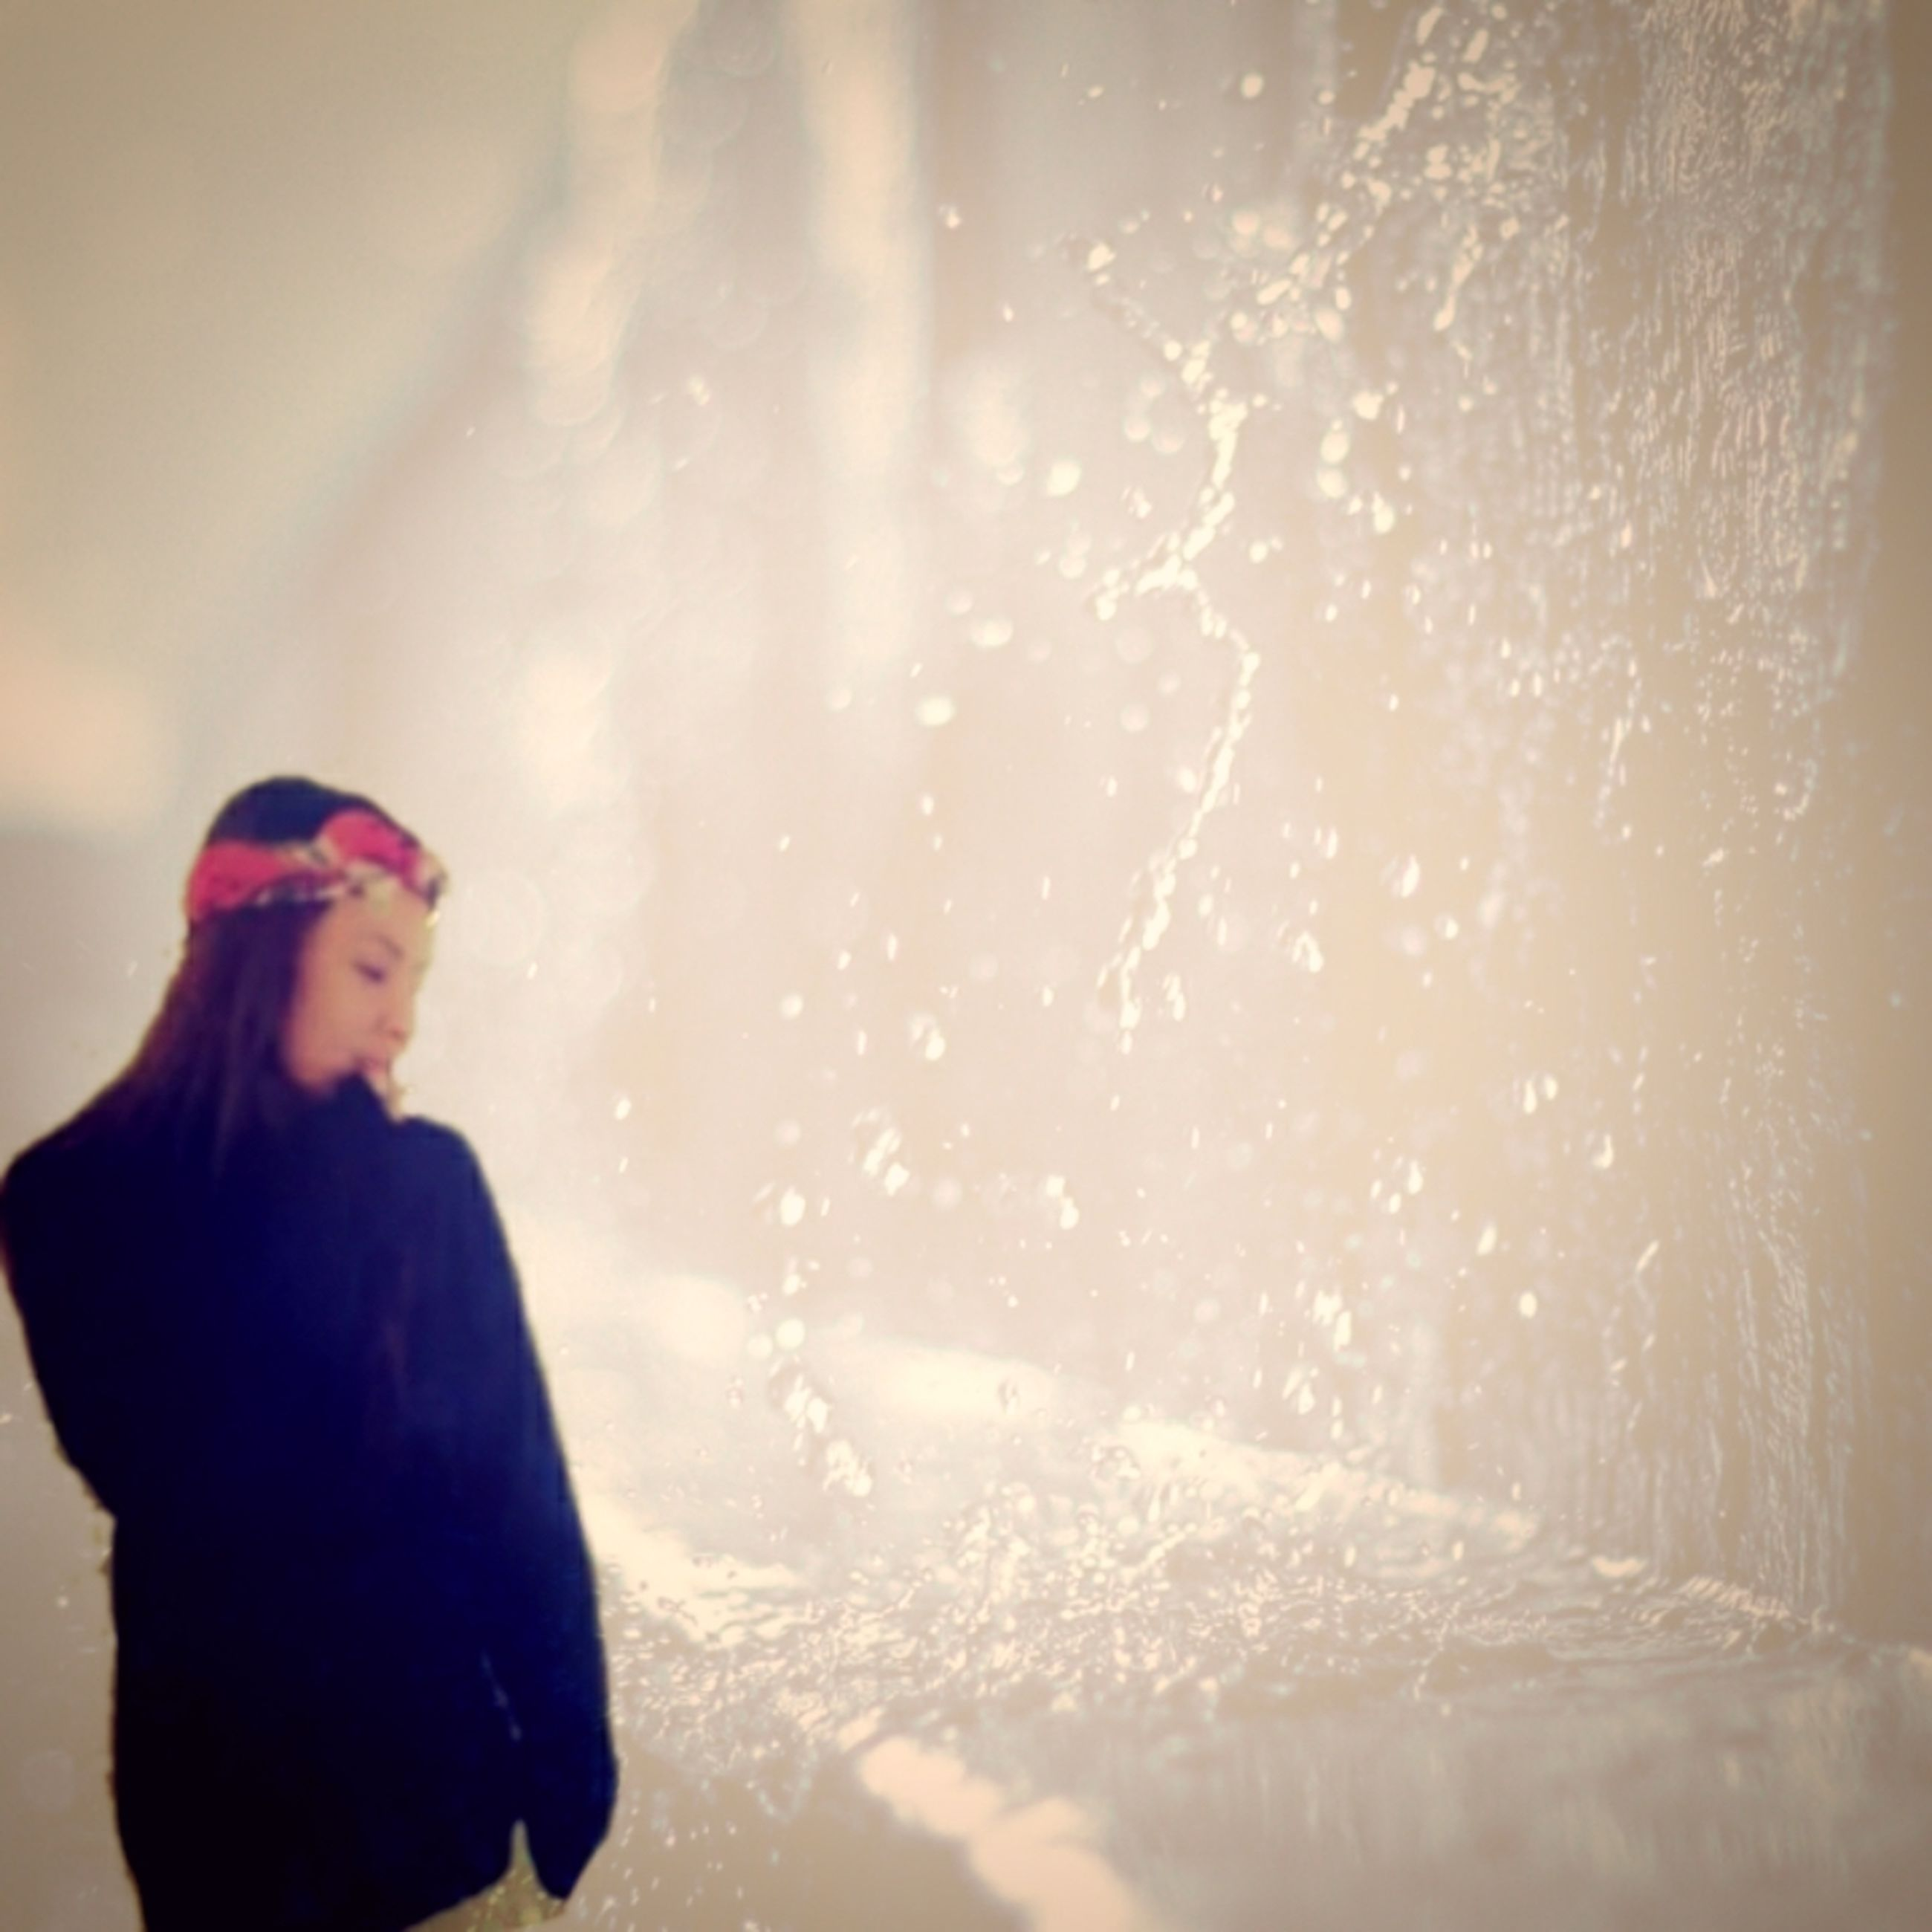 lifestyles, leisure activity, standing, young women, person, young adult, winter, rear view, long hair, season, cold temperature, headshot, casual clothing, three quarter length, water, snow, waist up, weather